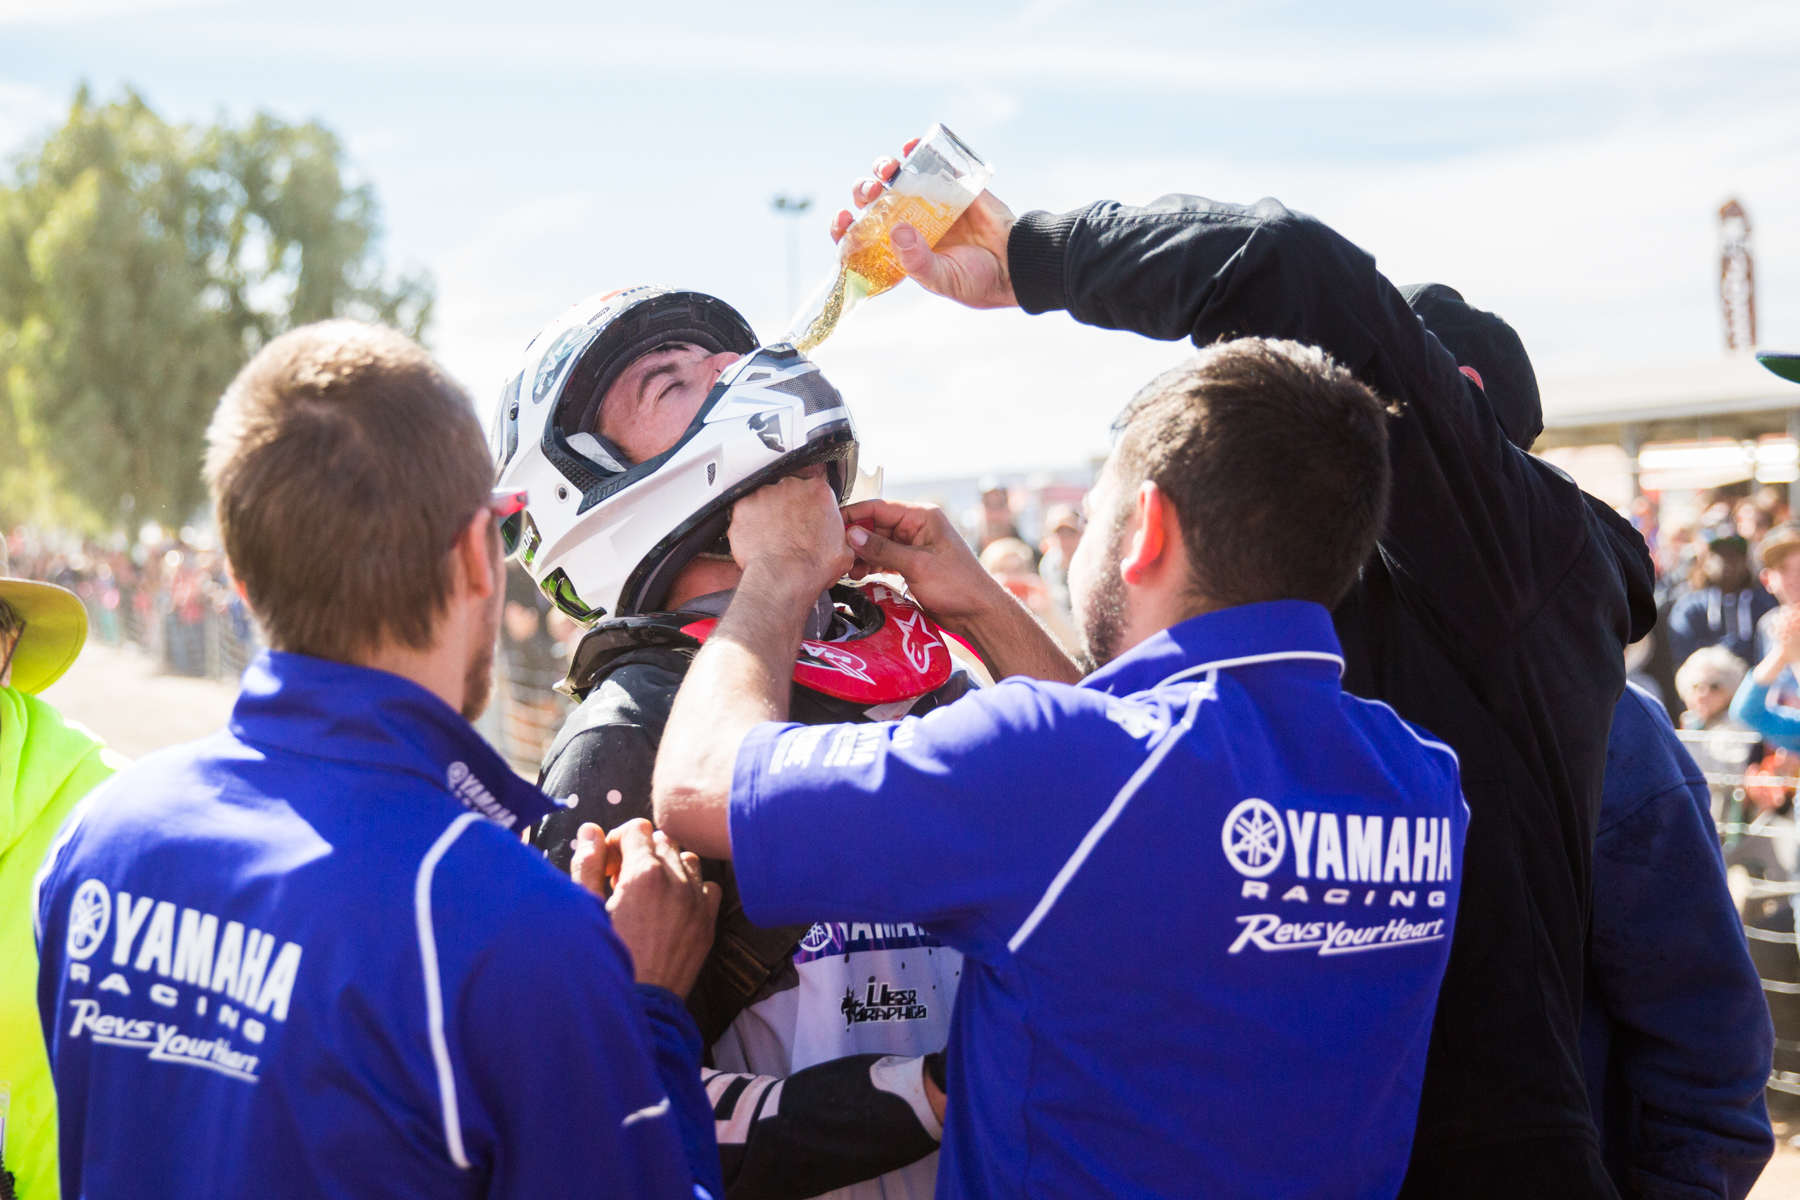 Daymon undergoing scientific rehydration methods from his team after finishing first